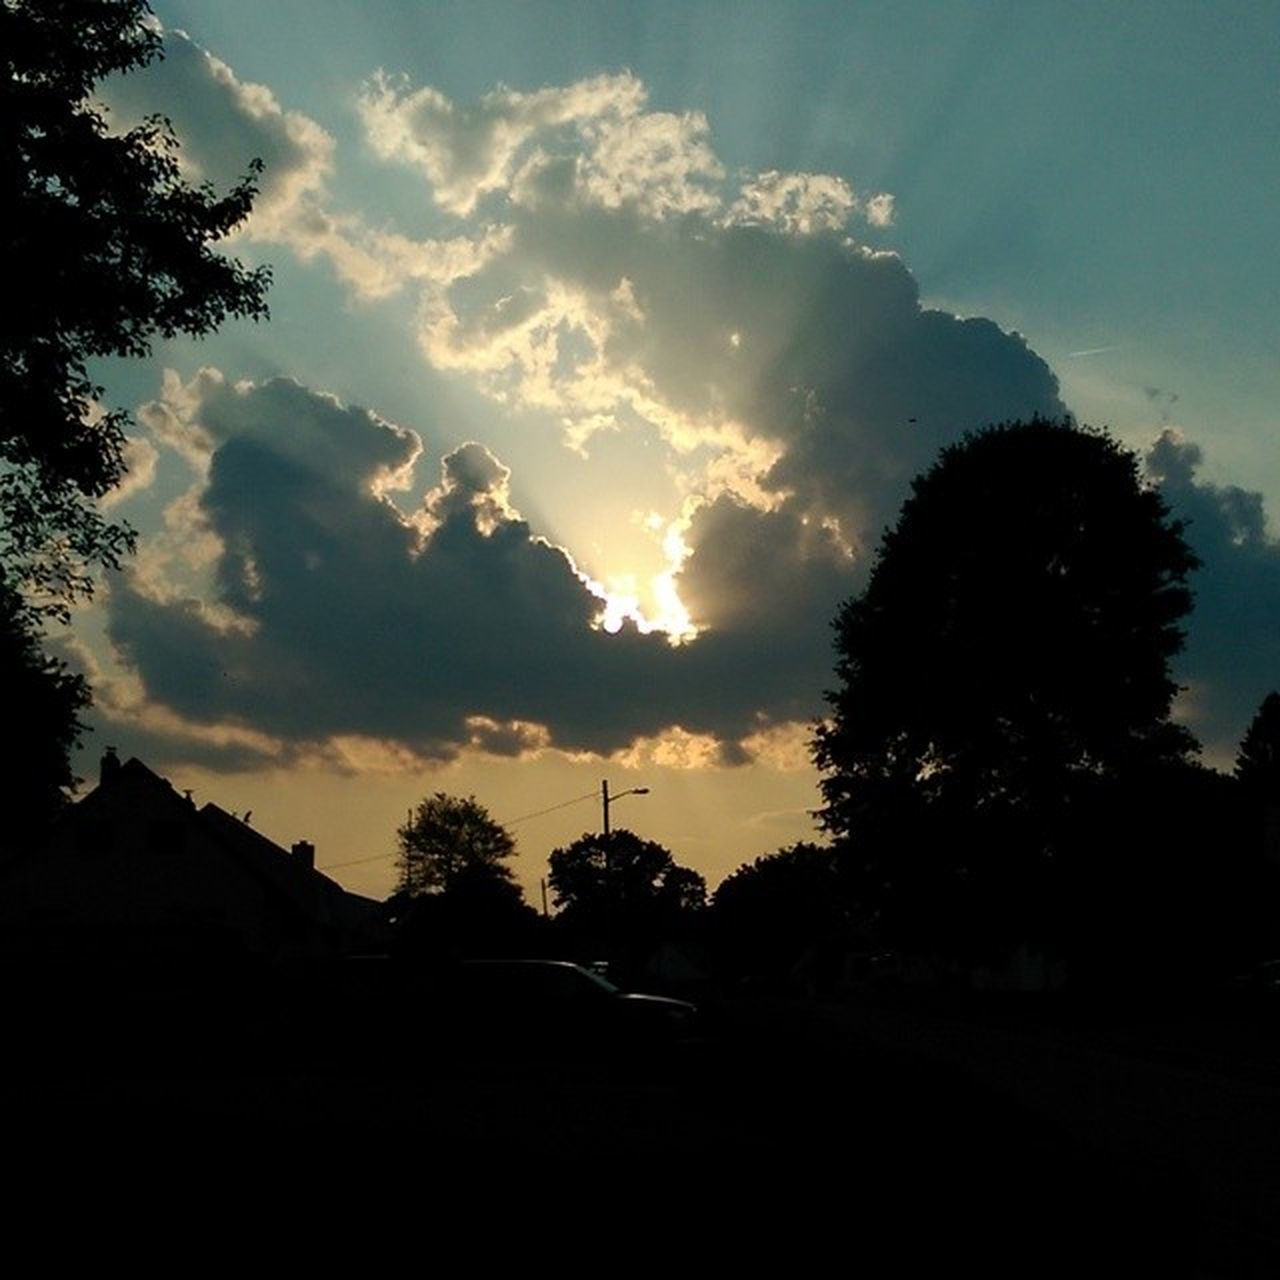 tree, silhouette, sky, no people, nature, outdoors, cloud - sky, sunset, beauty in nature, day